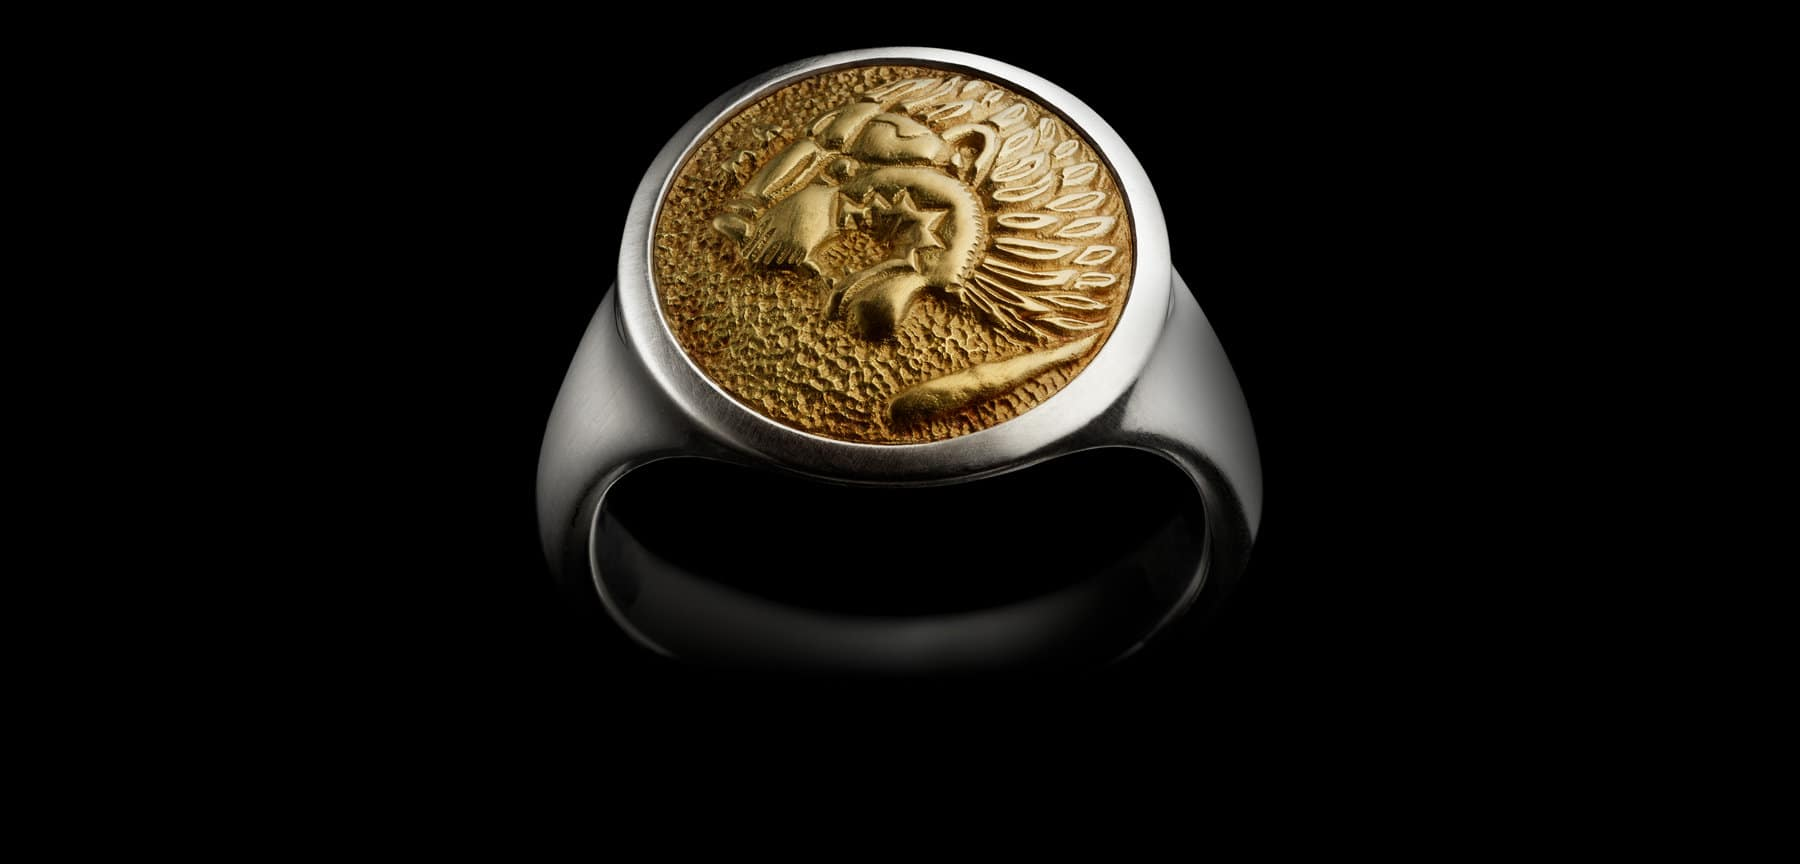 A color photograph shows a David Yurman men's Petrvs® signet ring, crafted from sterling silver with an 18K yellow gold lion emblem, against a black background.